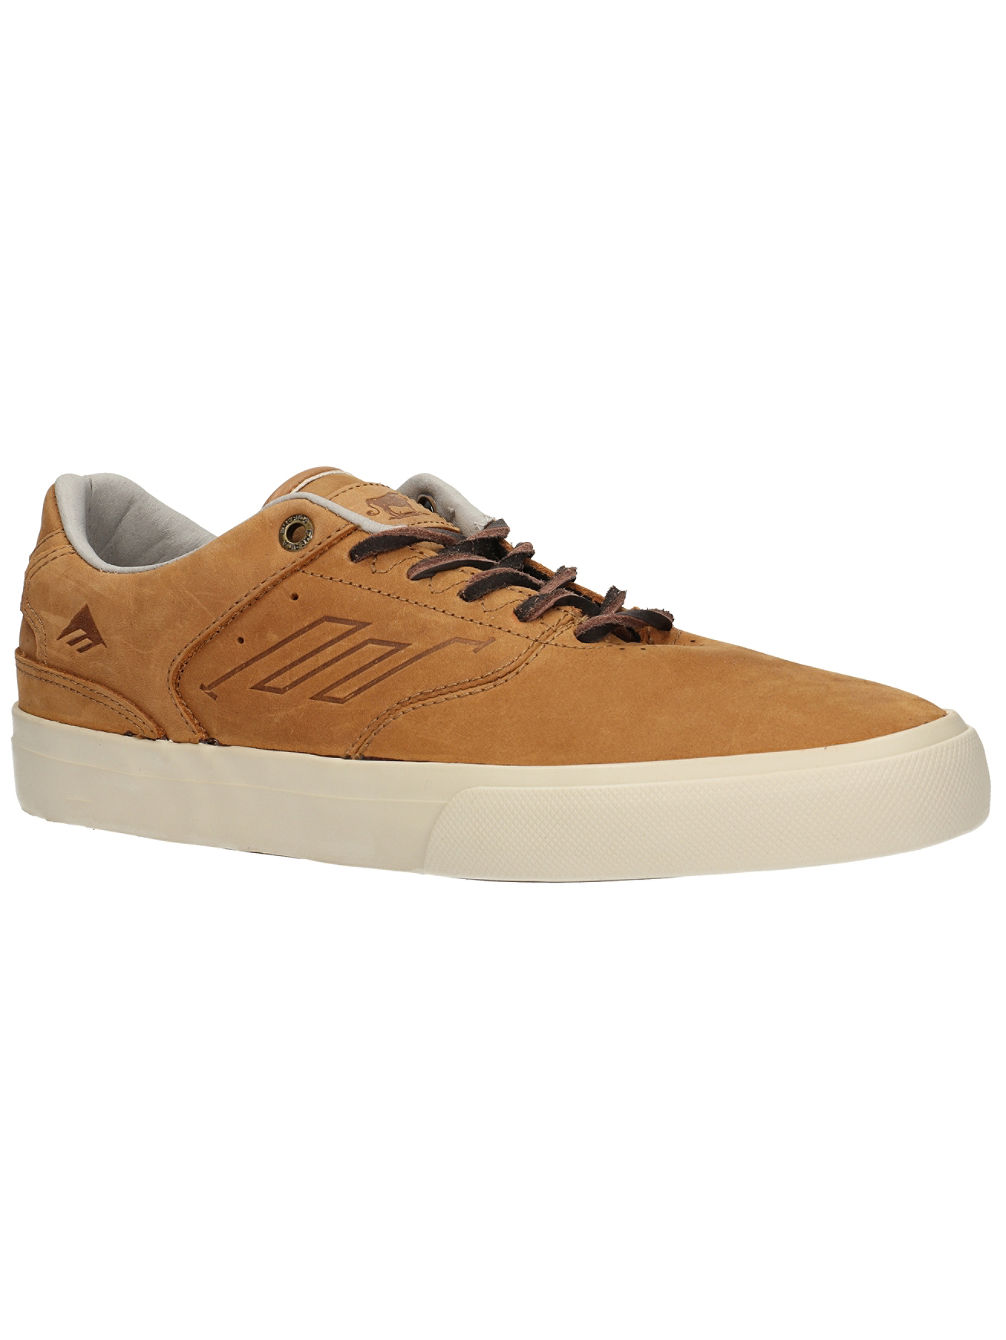 The Low Vulc Skateschuhe